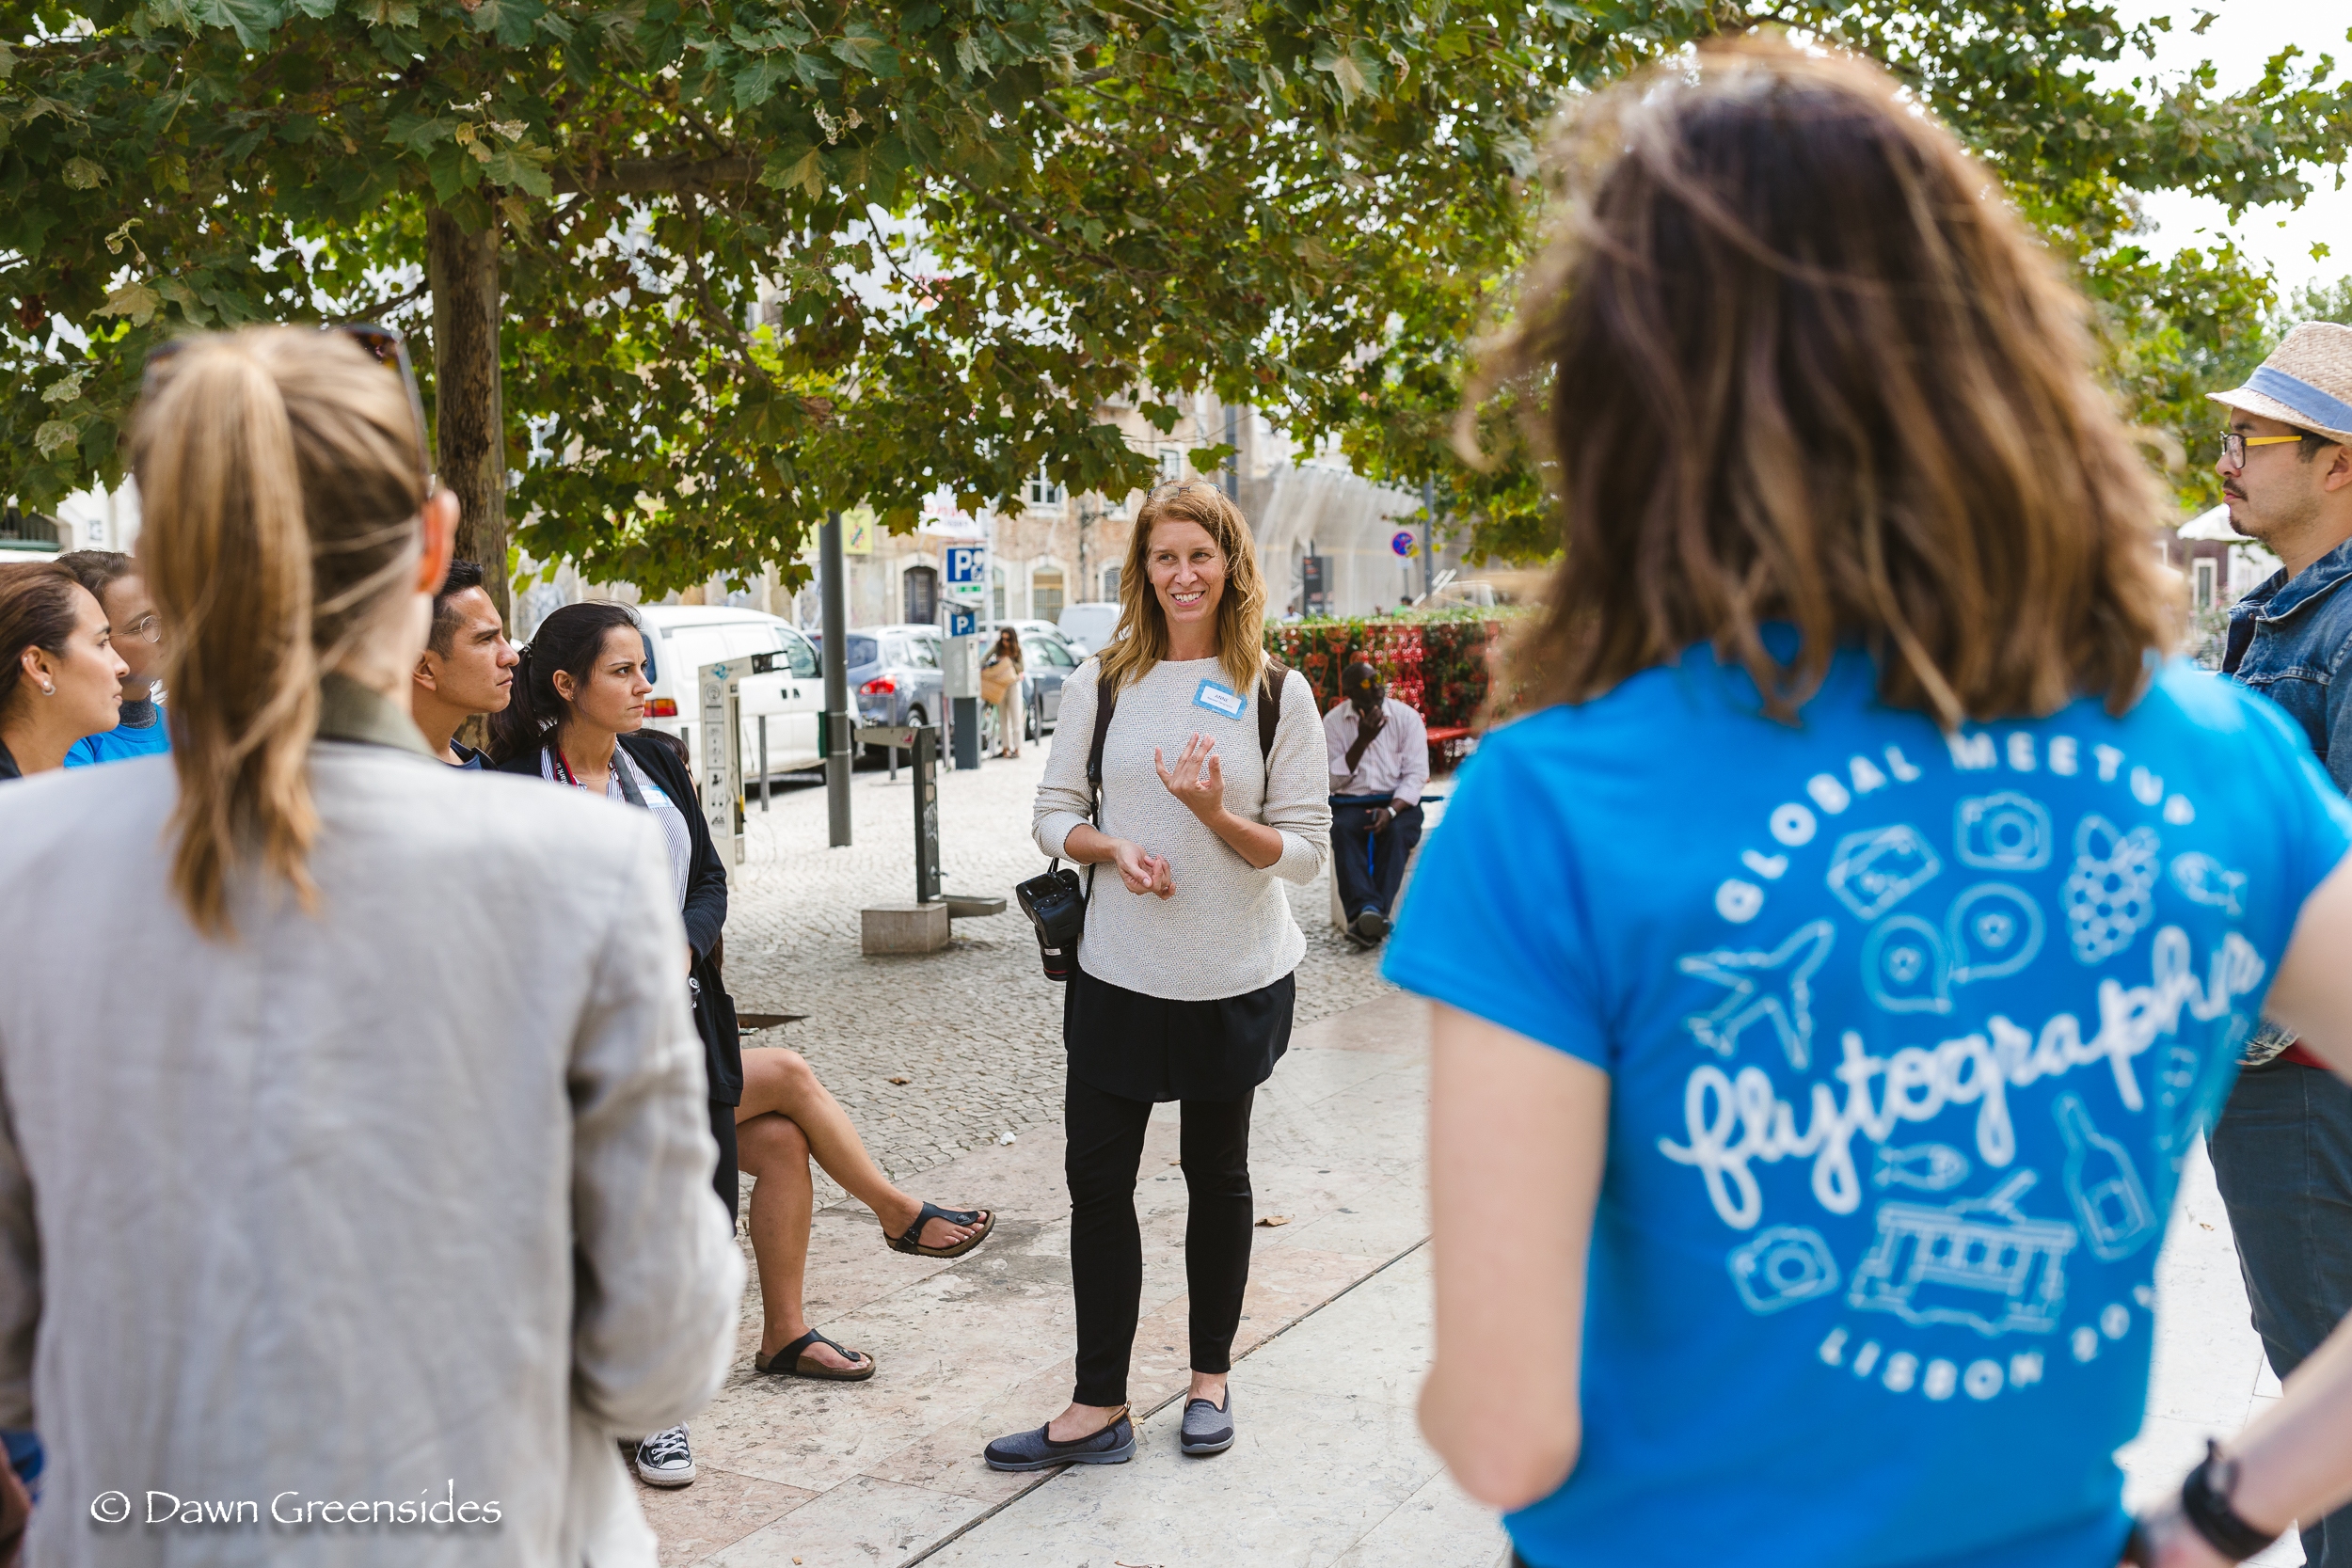 At the Flytographer global meetup in Portugal we had a session with Anne Farrar, the National Geographic Director of Photography. How's that for inspirational?!